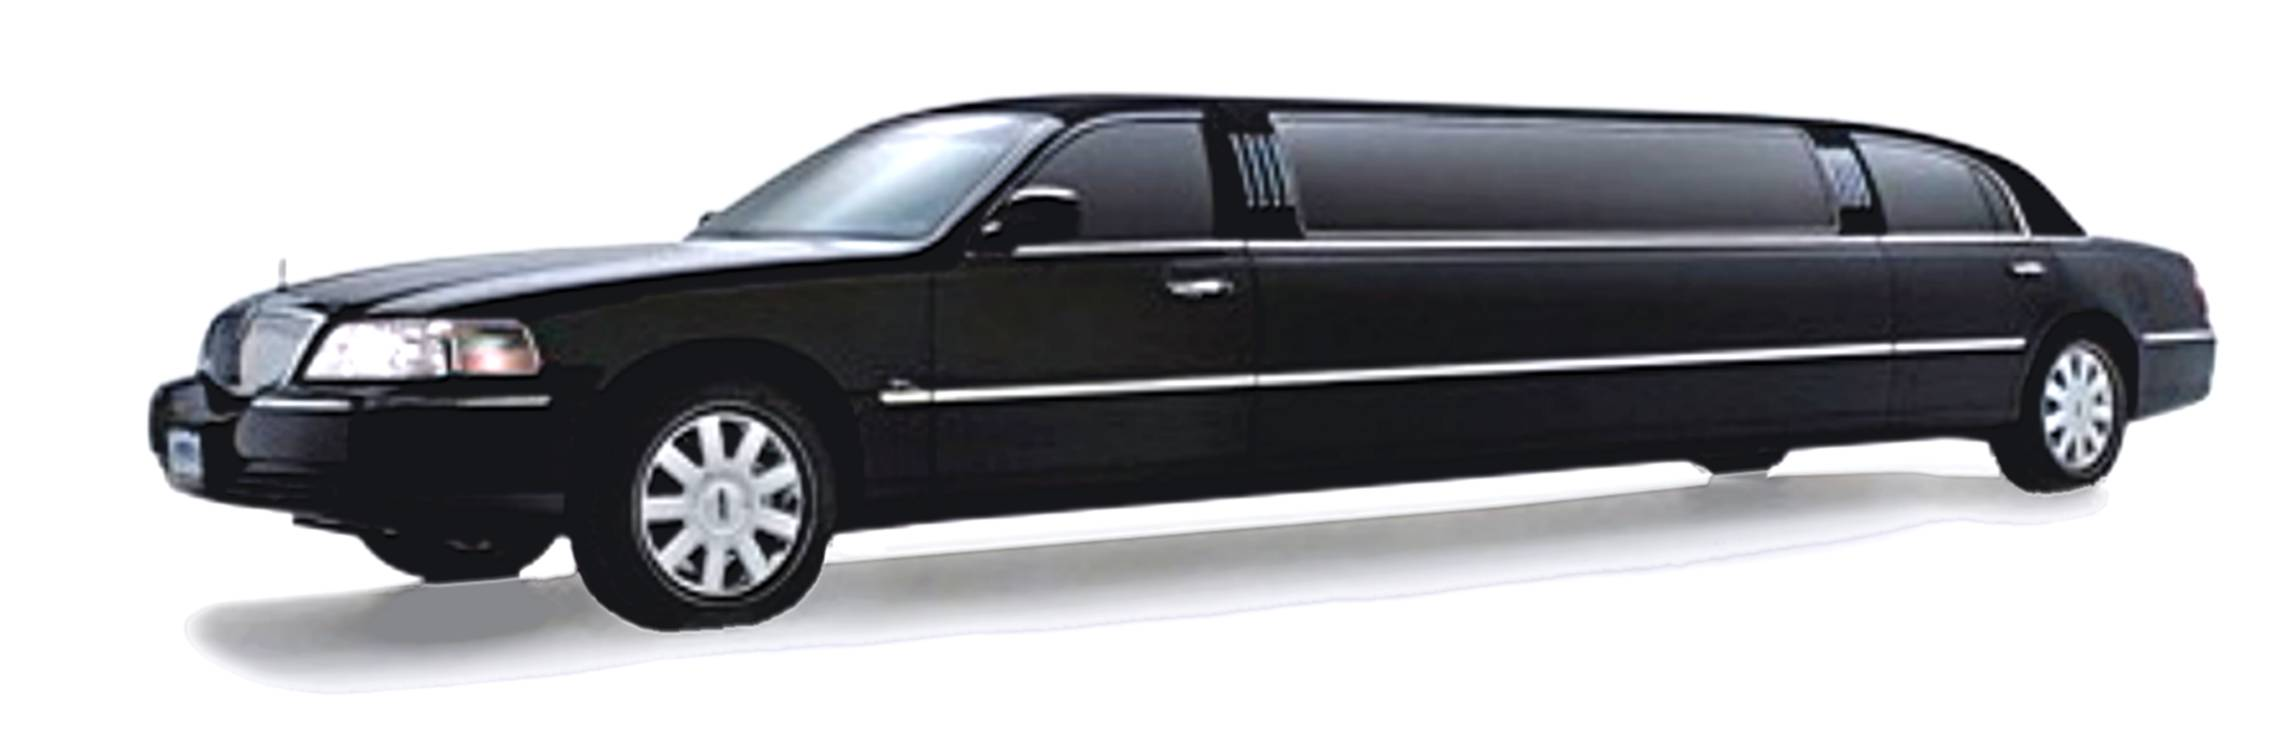 Stretch limo clipart.